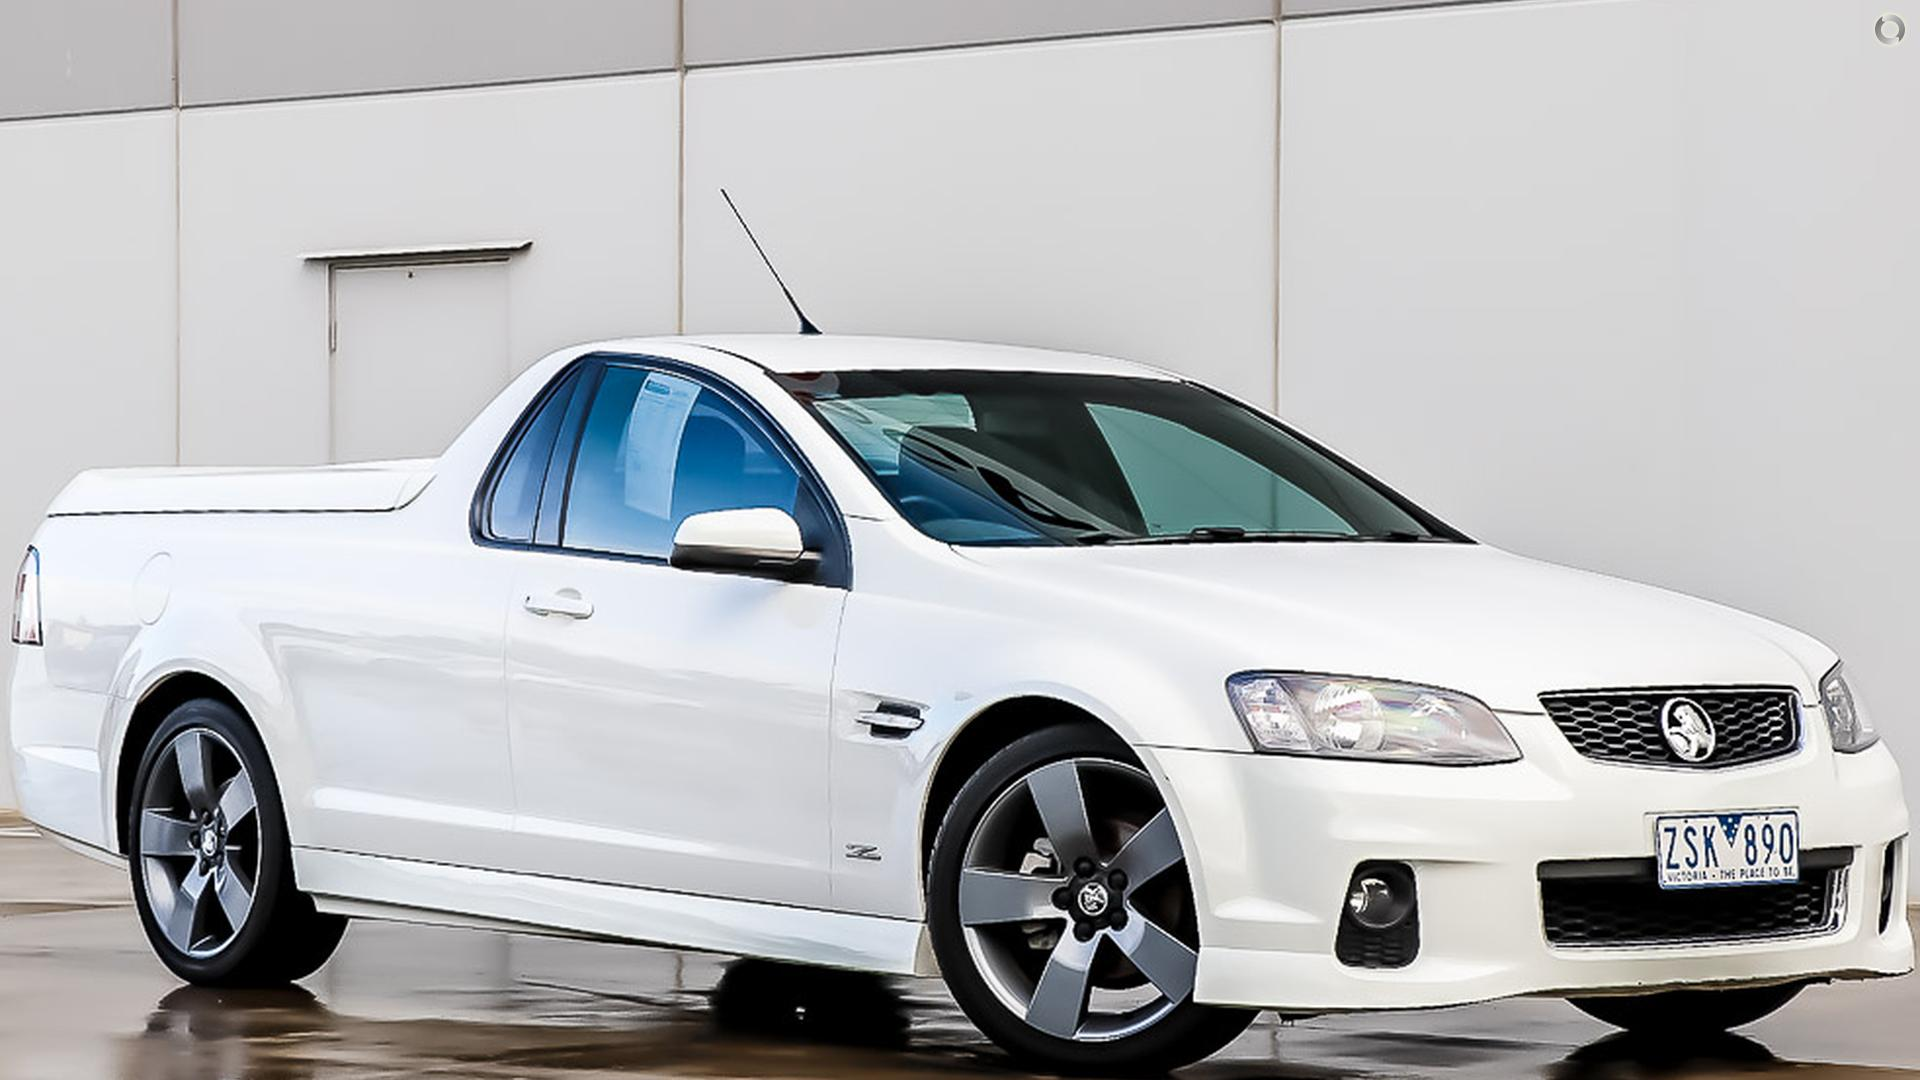 2013 Holden Ute VE Series II